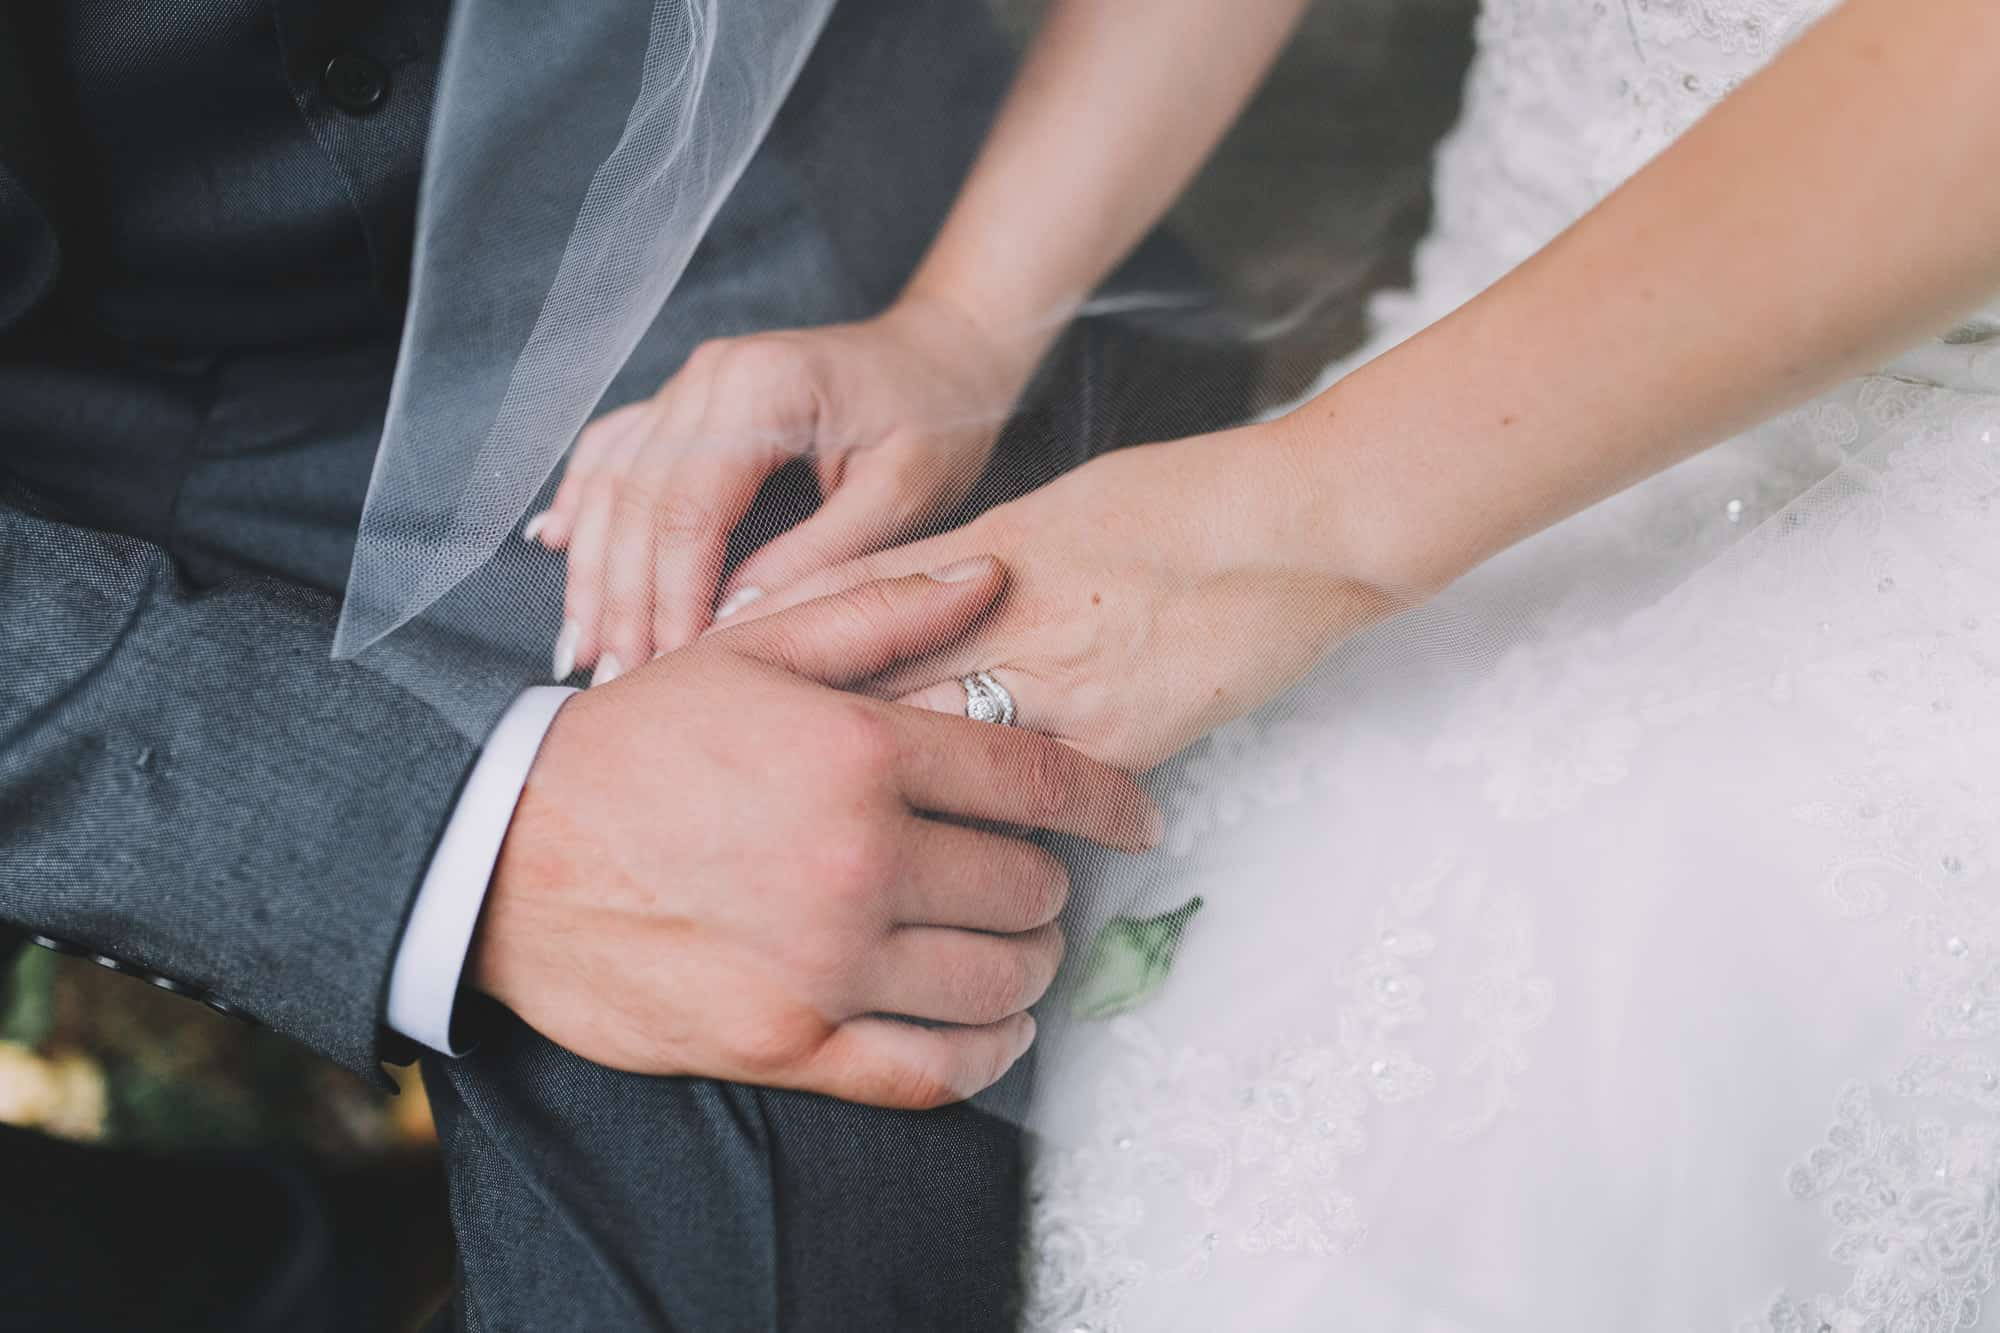 Tips To Take Care of Your Wedding Ring - My Kiwi Wedding